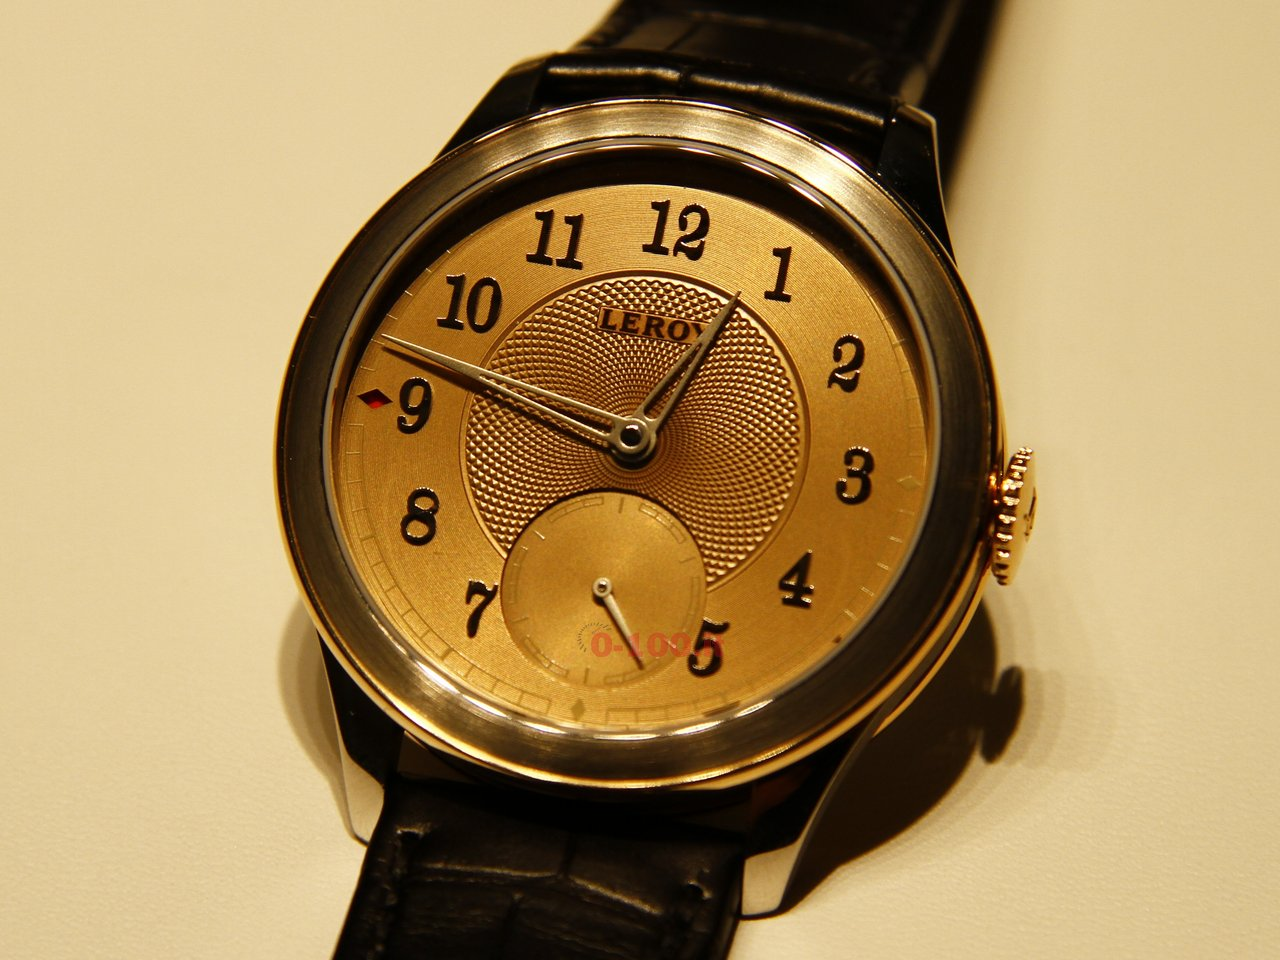 baselworld-2015_leroy-chronometer-l200-0-100-10